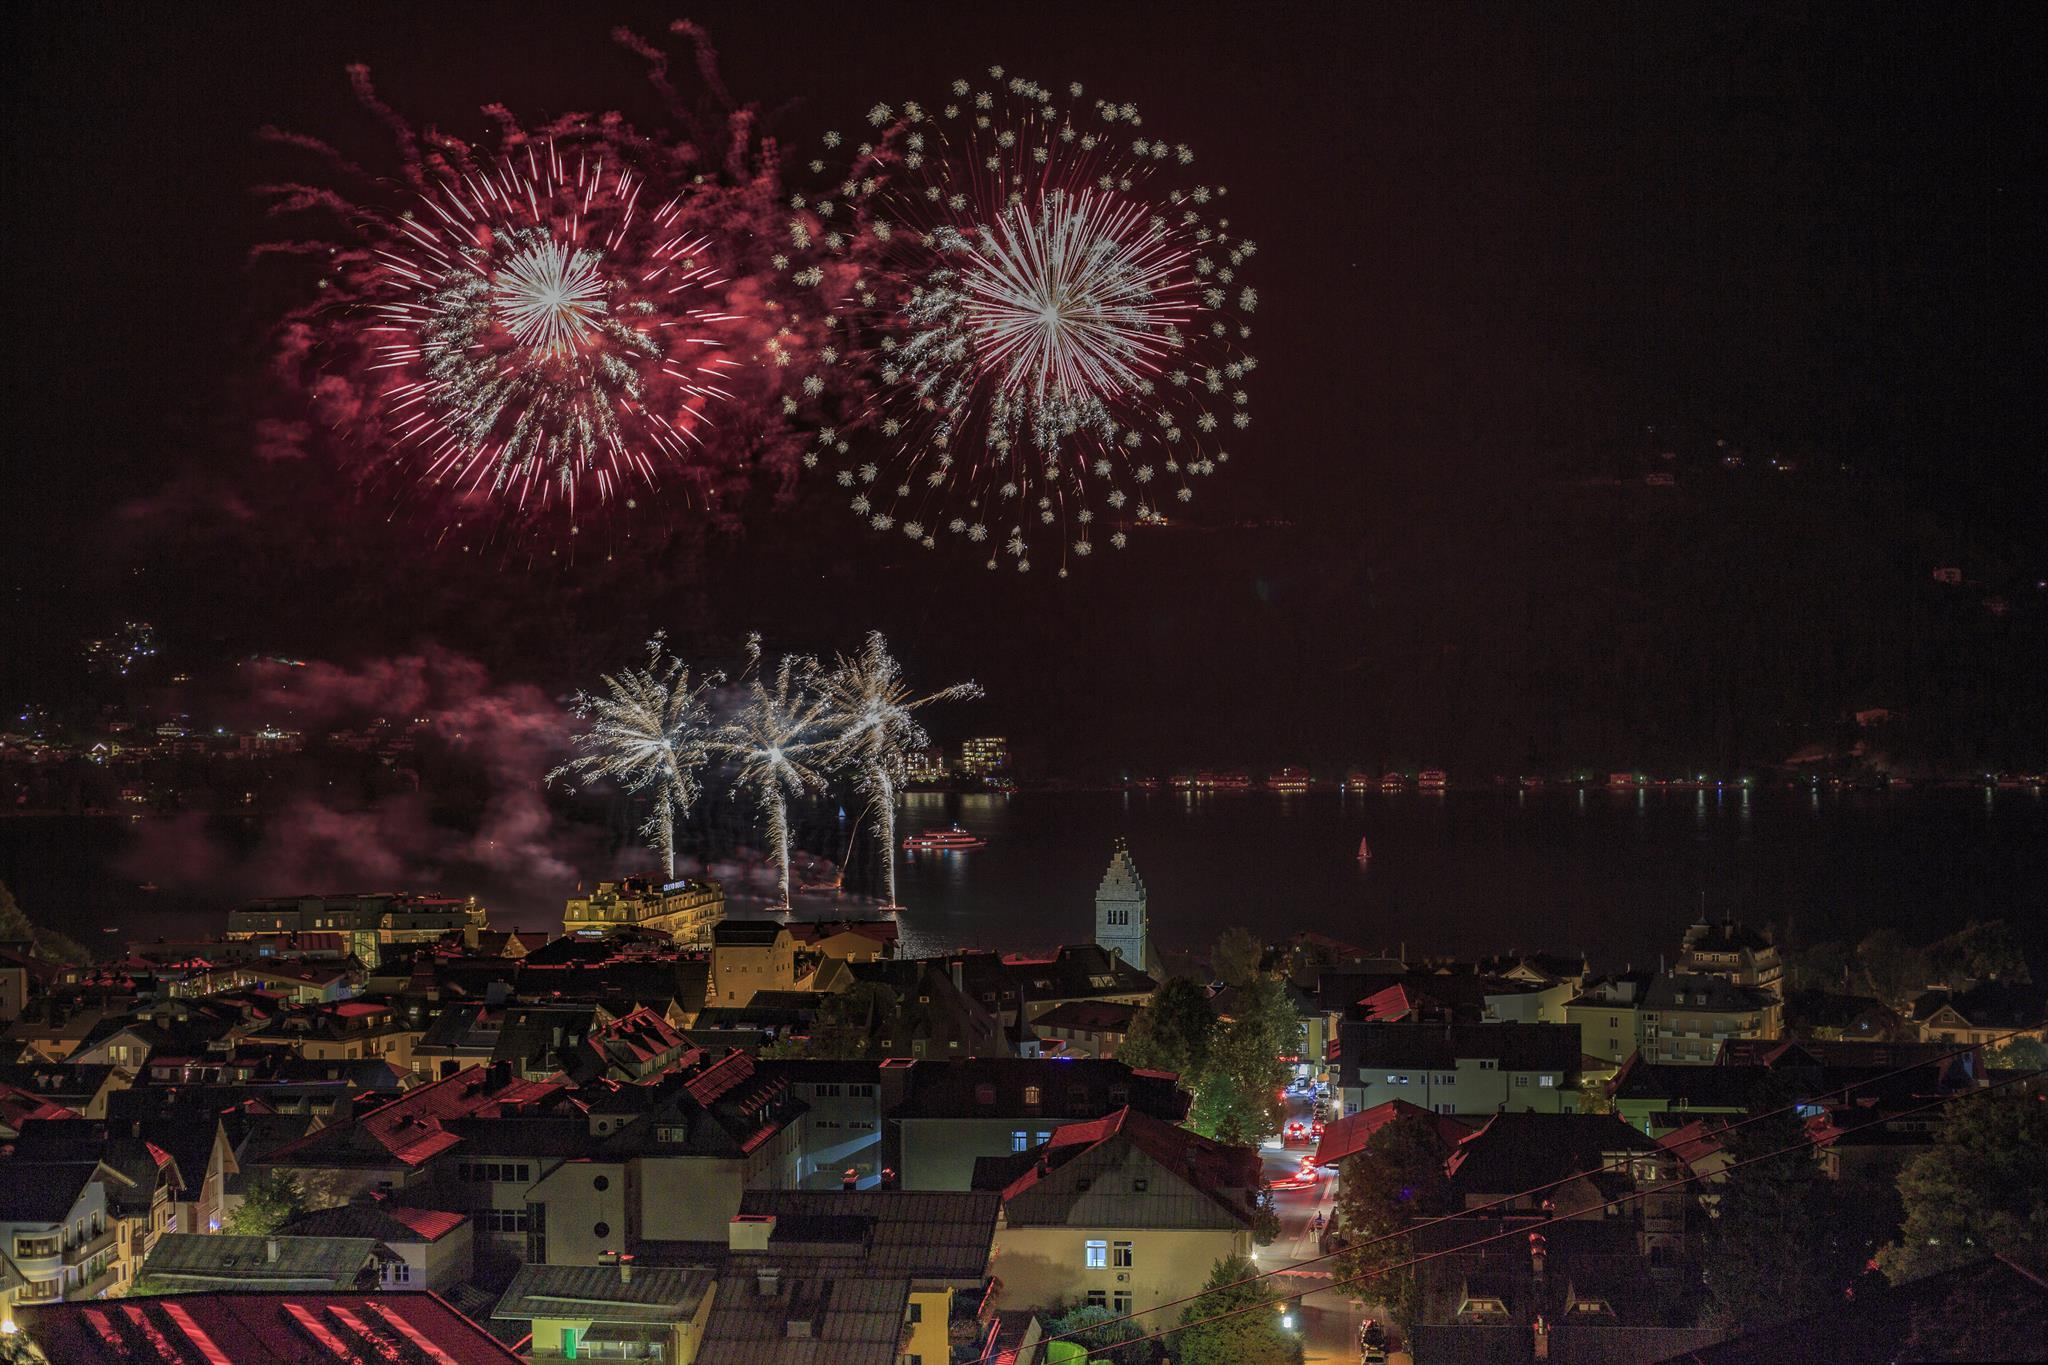 2nd Zell Lake Festival with fireworks cruise - 03/08/2019, from 9:00 PM